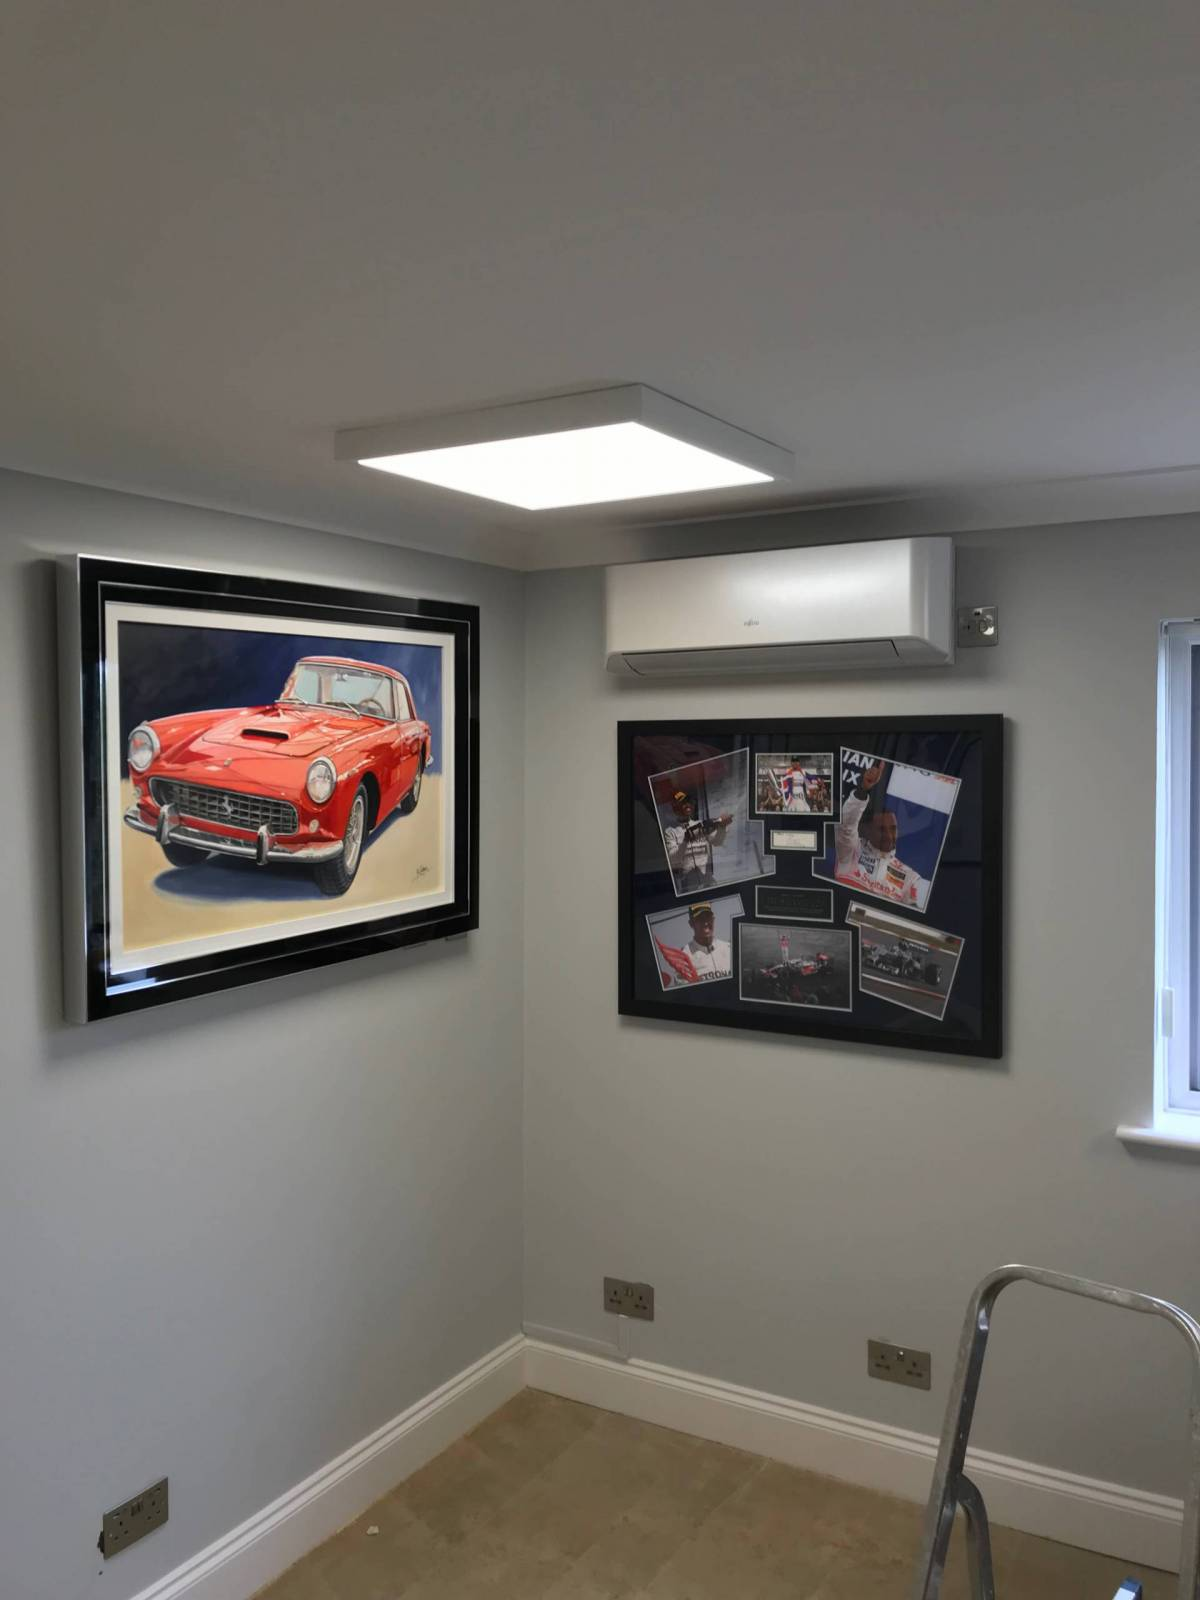 air-conditioning-installation-london-air-conditioning-service-london